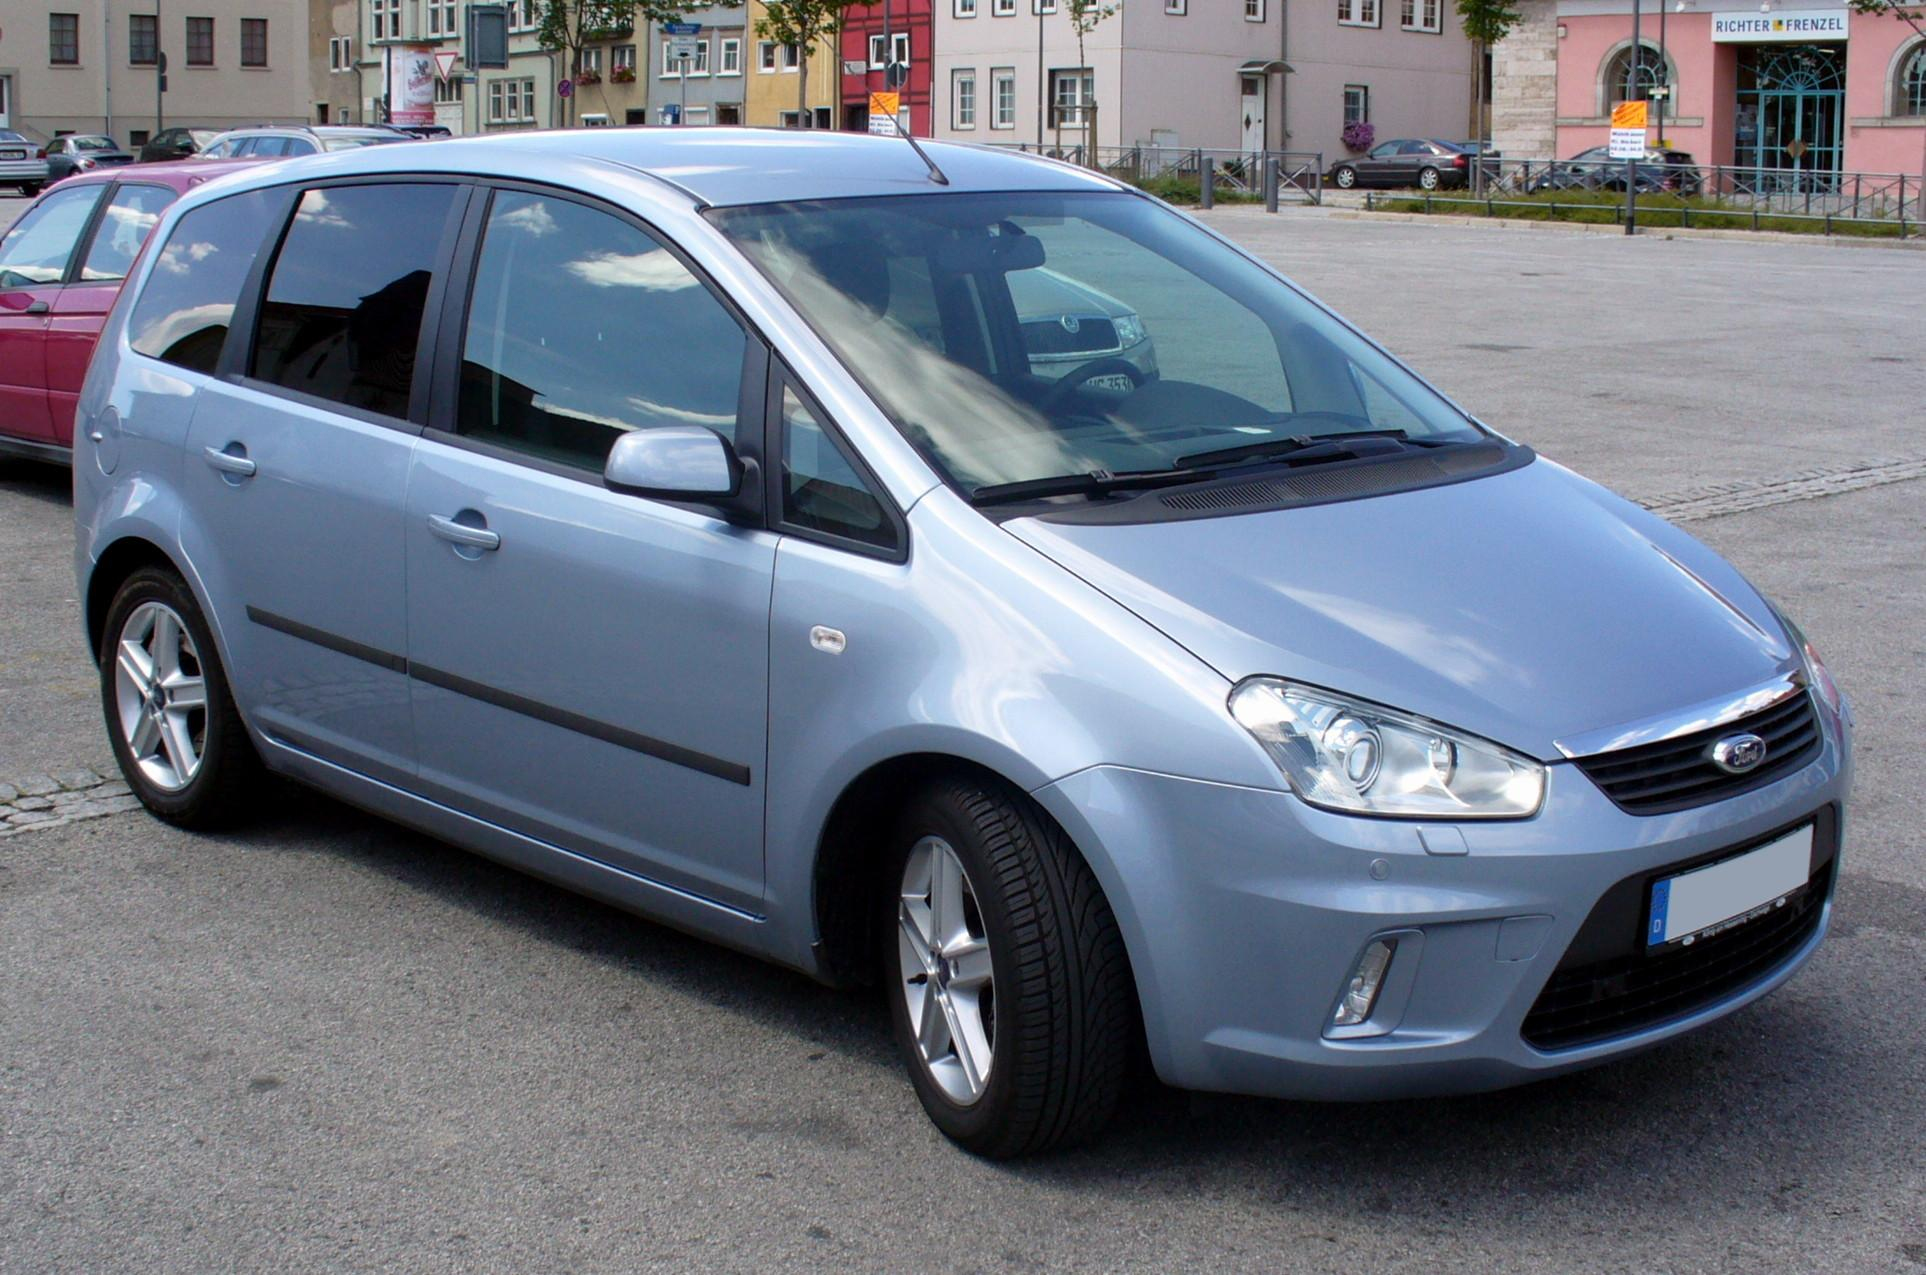 Ford C-Max - Simple English Wikipedia, the free encyclopedia